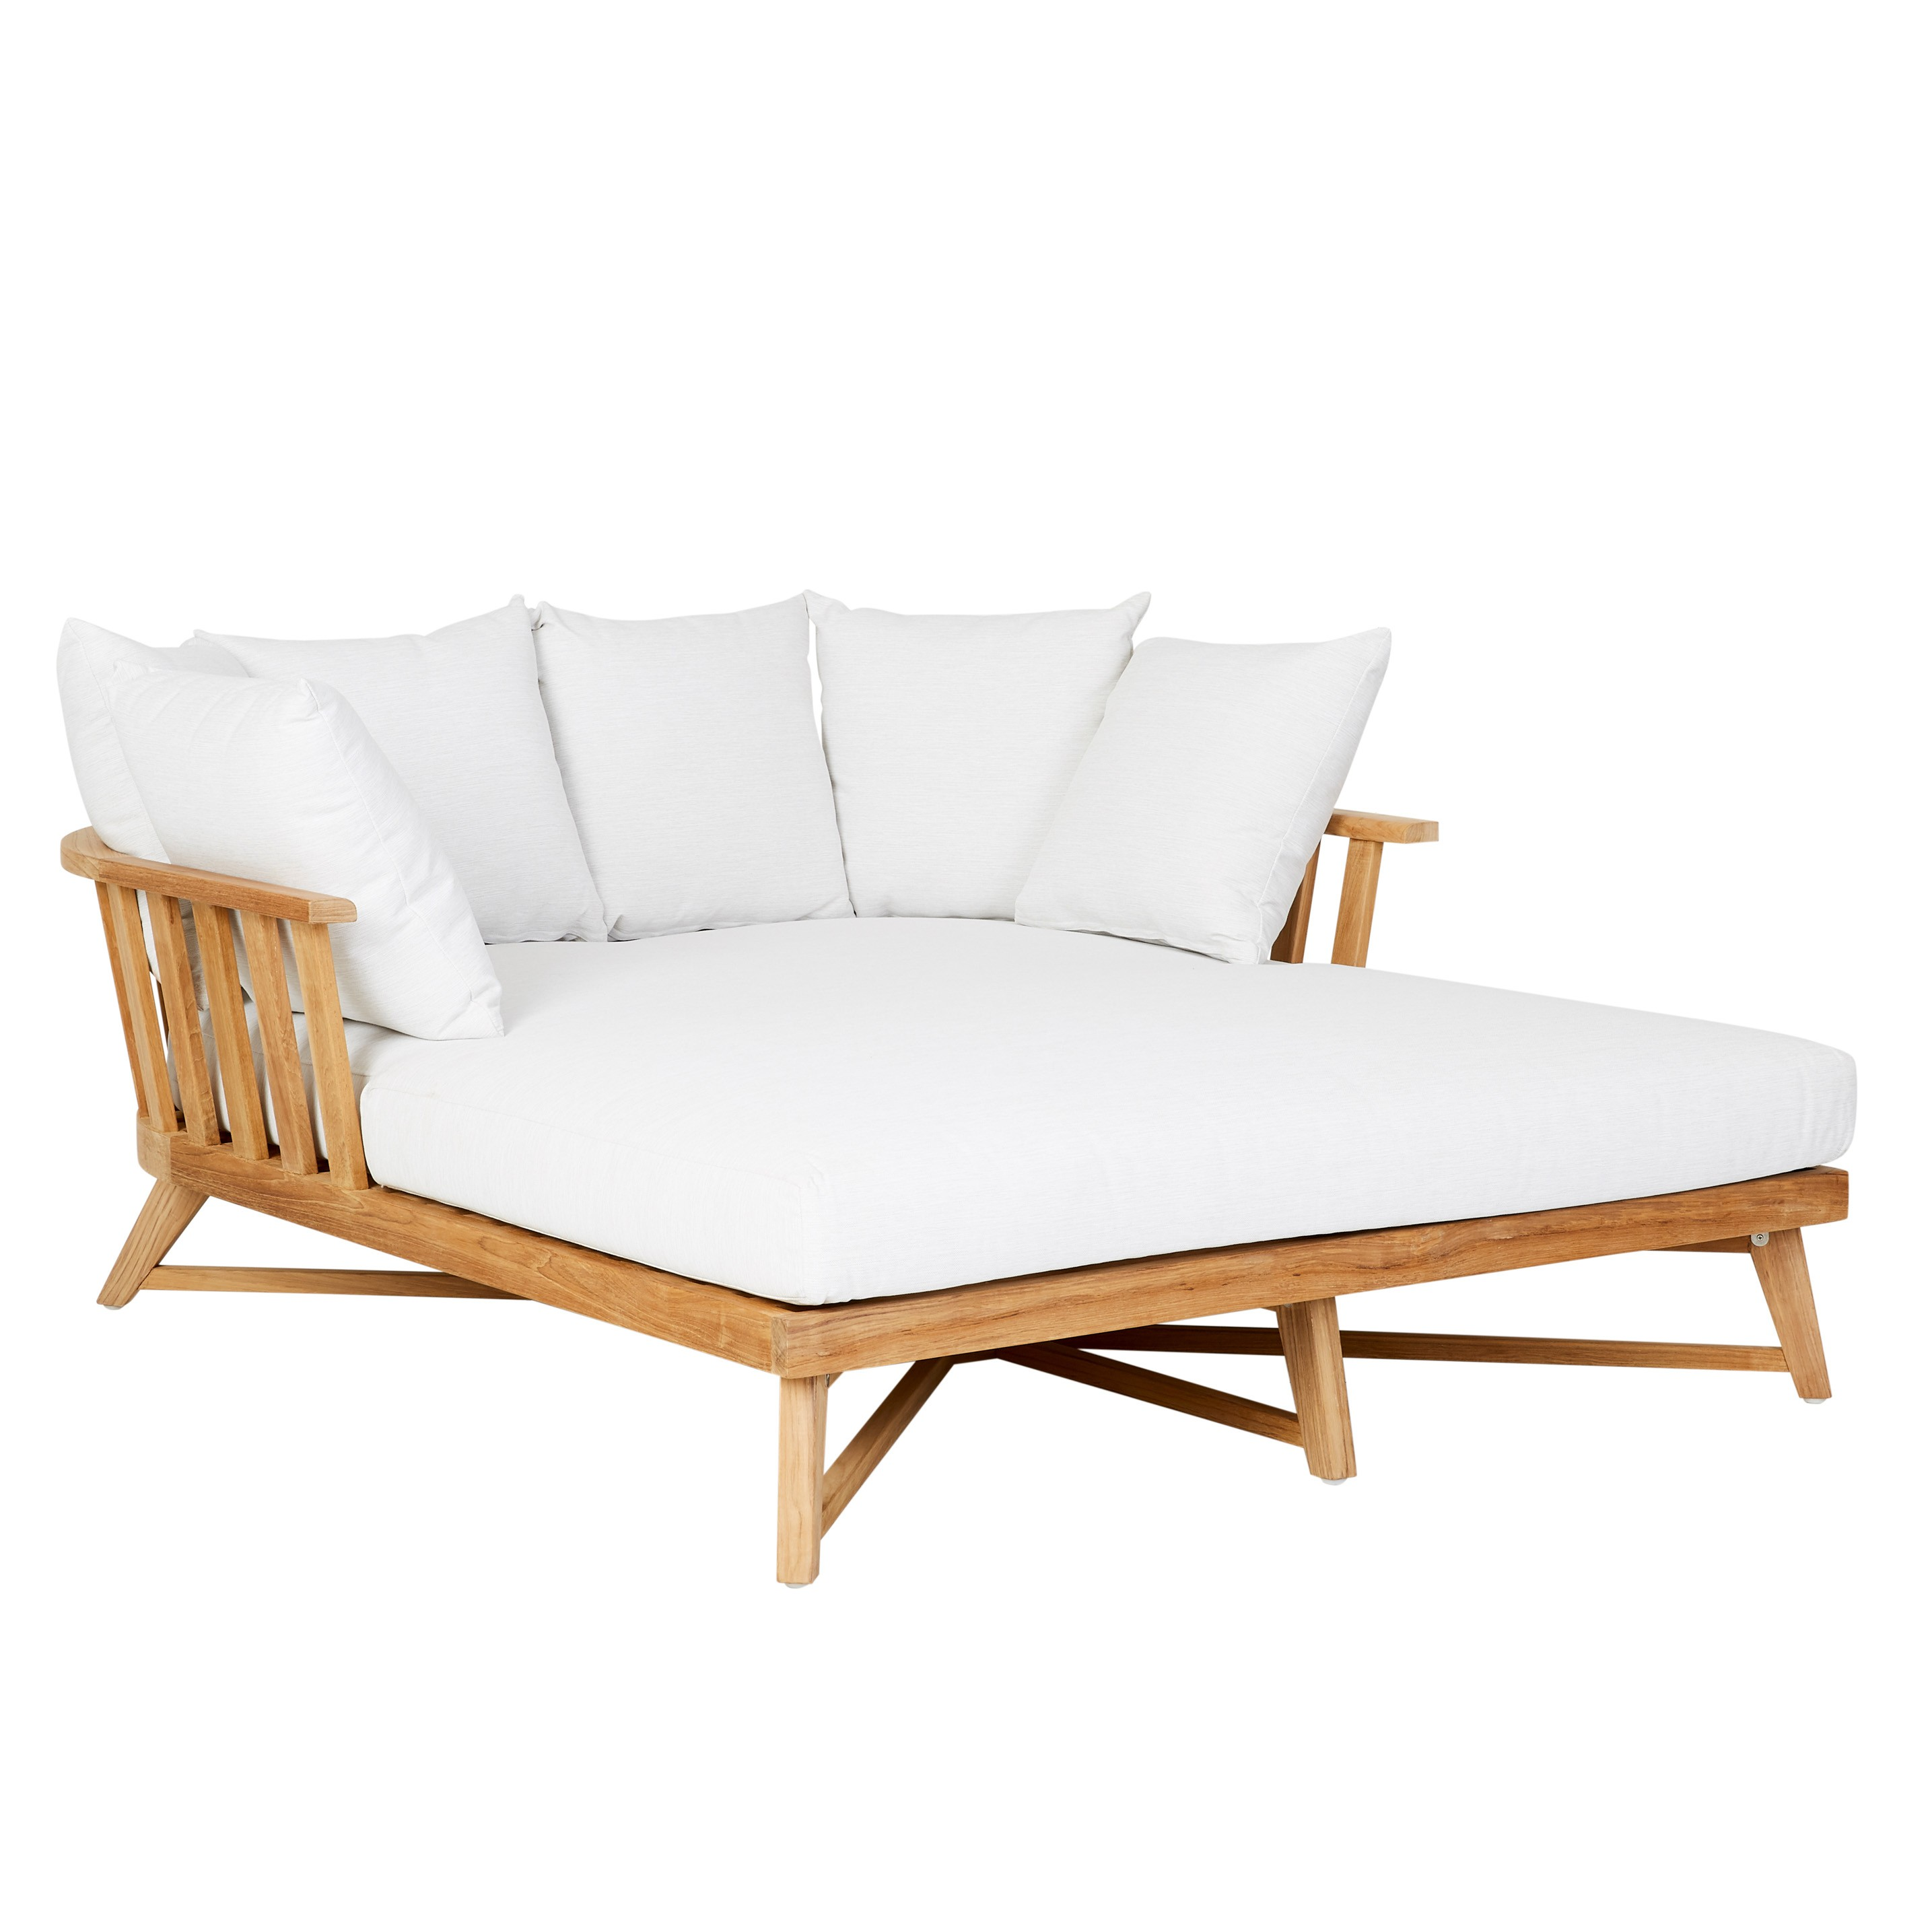 Furniture Hero-Images Sunbeds-and-Daybeds sonoma-slat-daybed-02